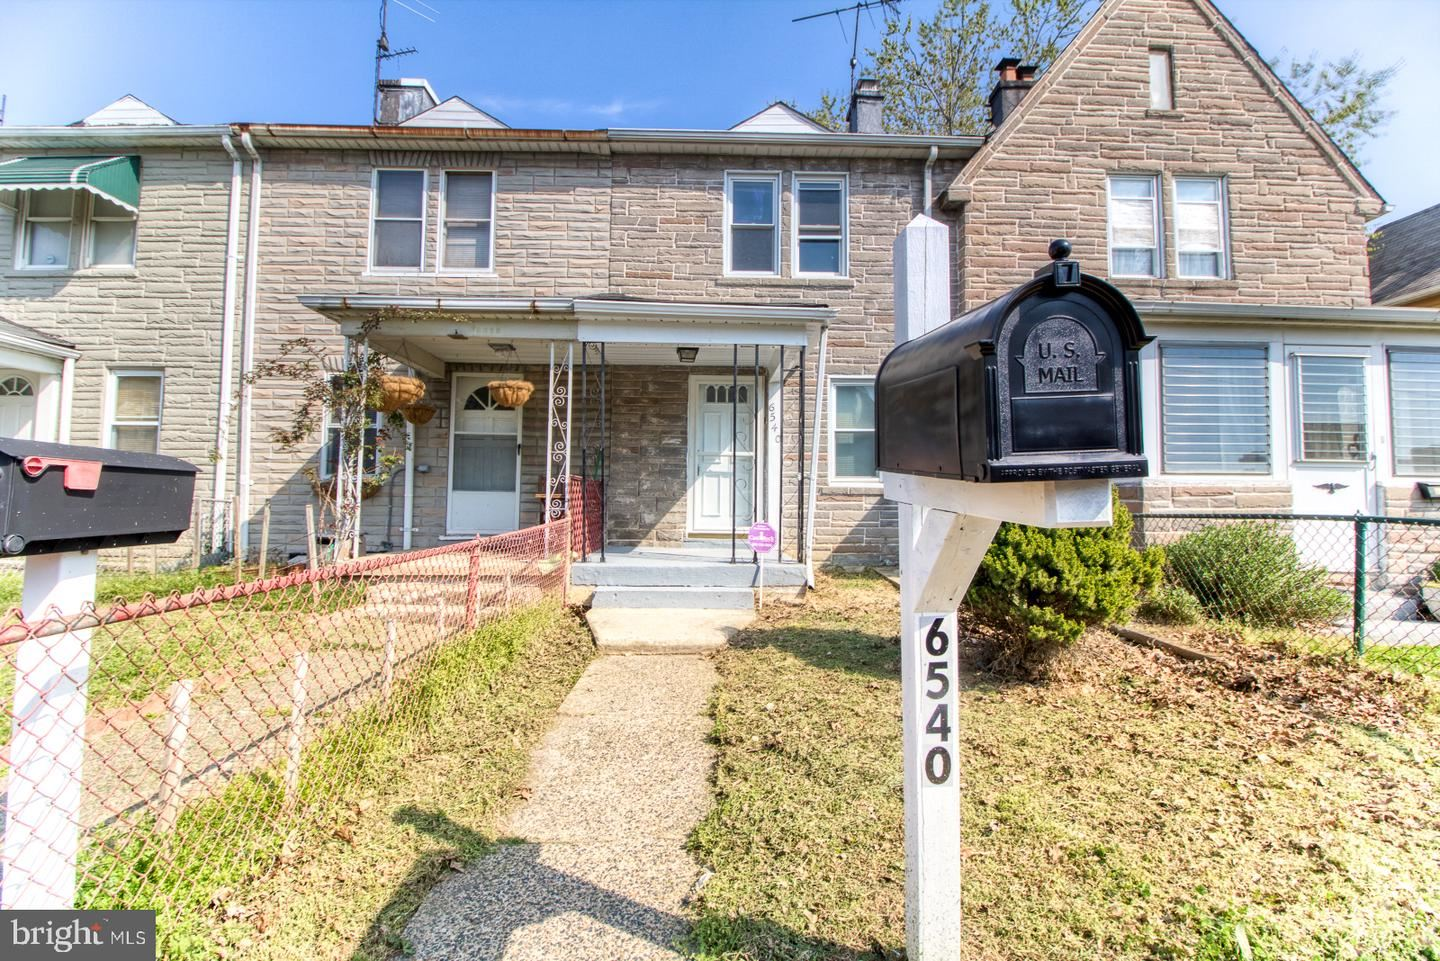 6540 PARNELL AVE, Baltimore, MD 21222 - MLS#: MDBA546616